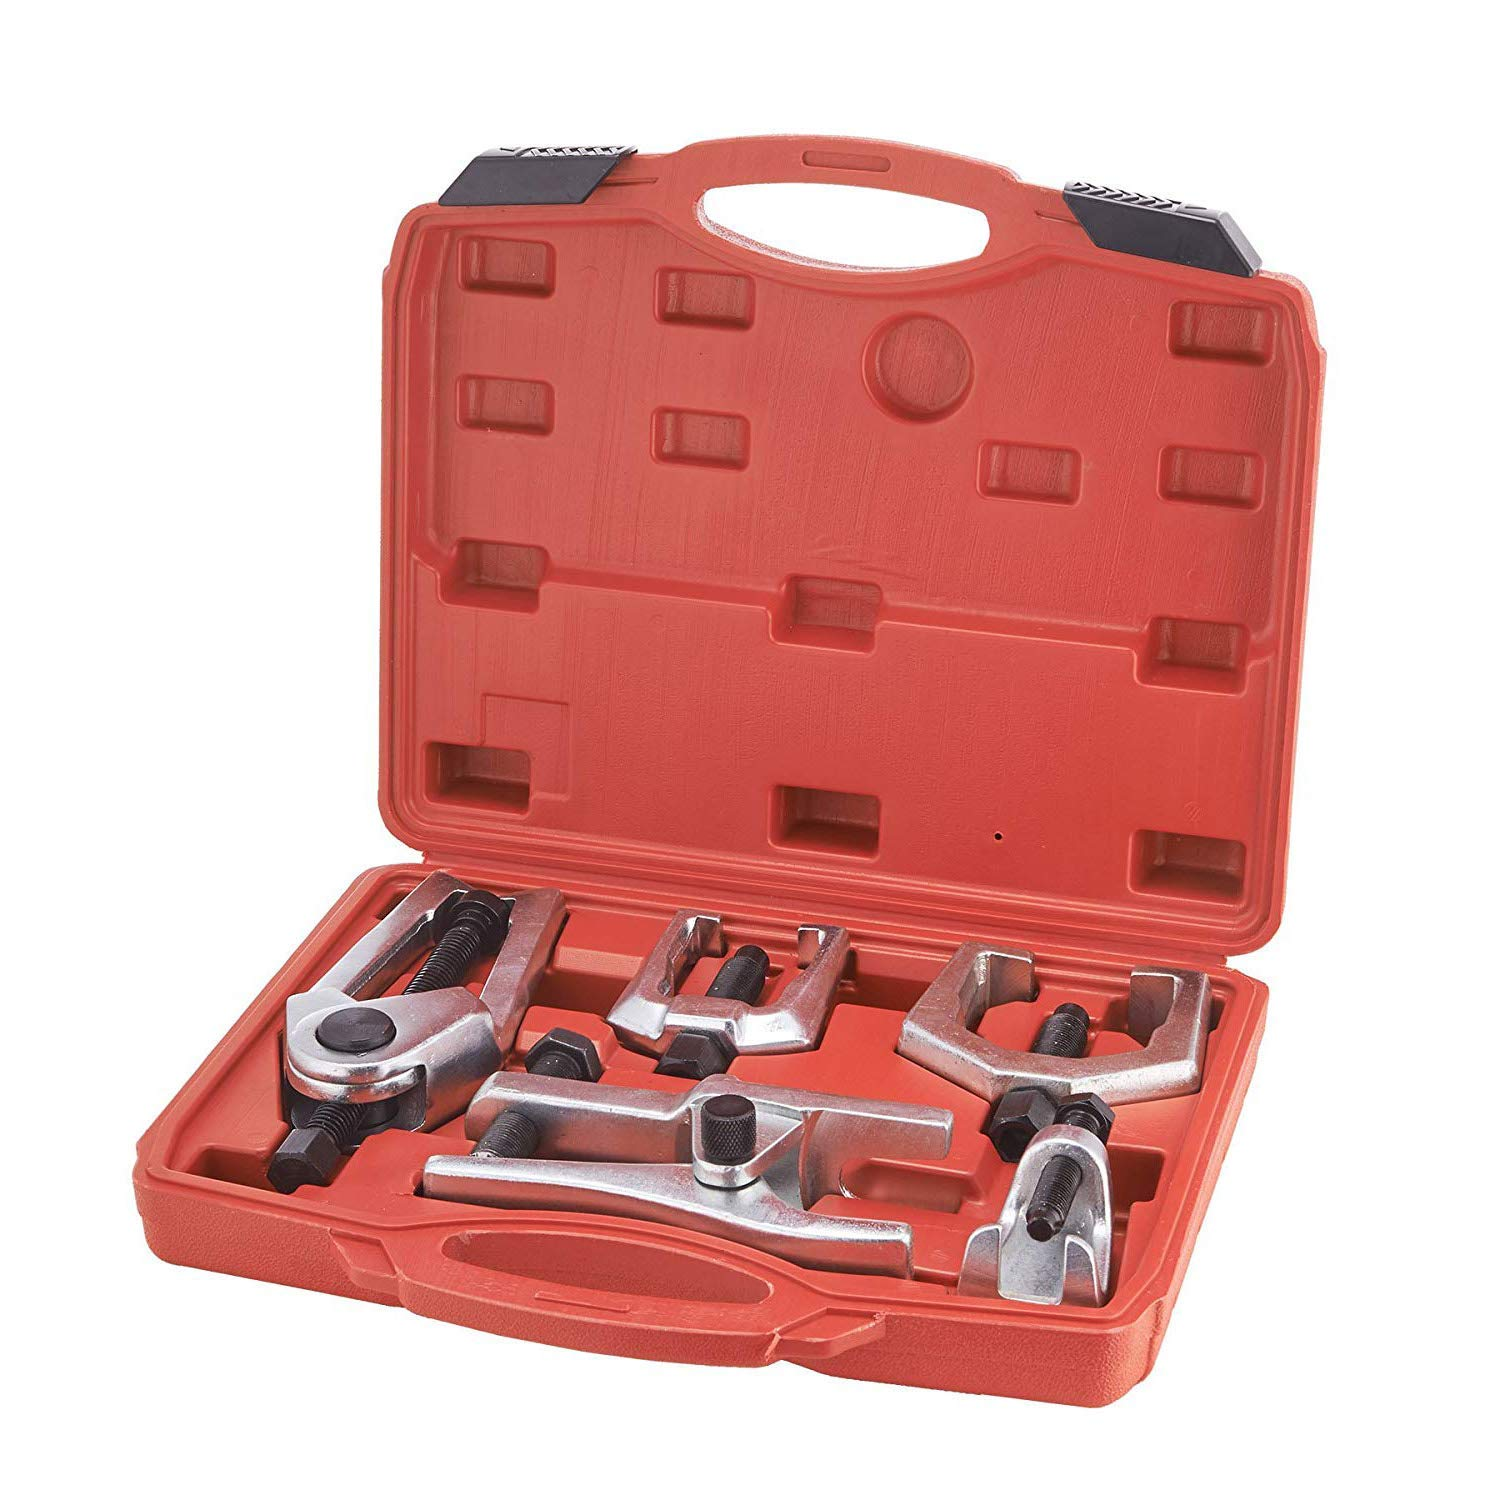 E-cowlboy Front End Service Tool Kit Pitman Arm Puller Ball Joint Separator Tie Rod Remover Tool 5pcs